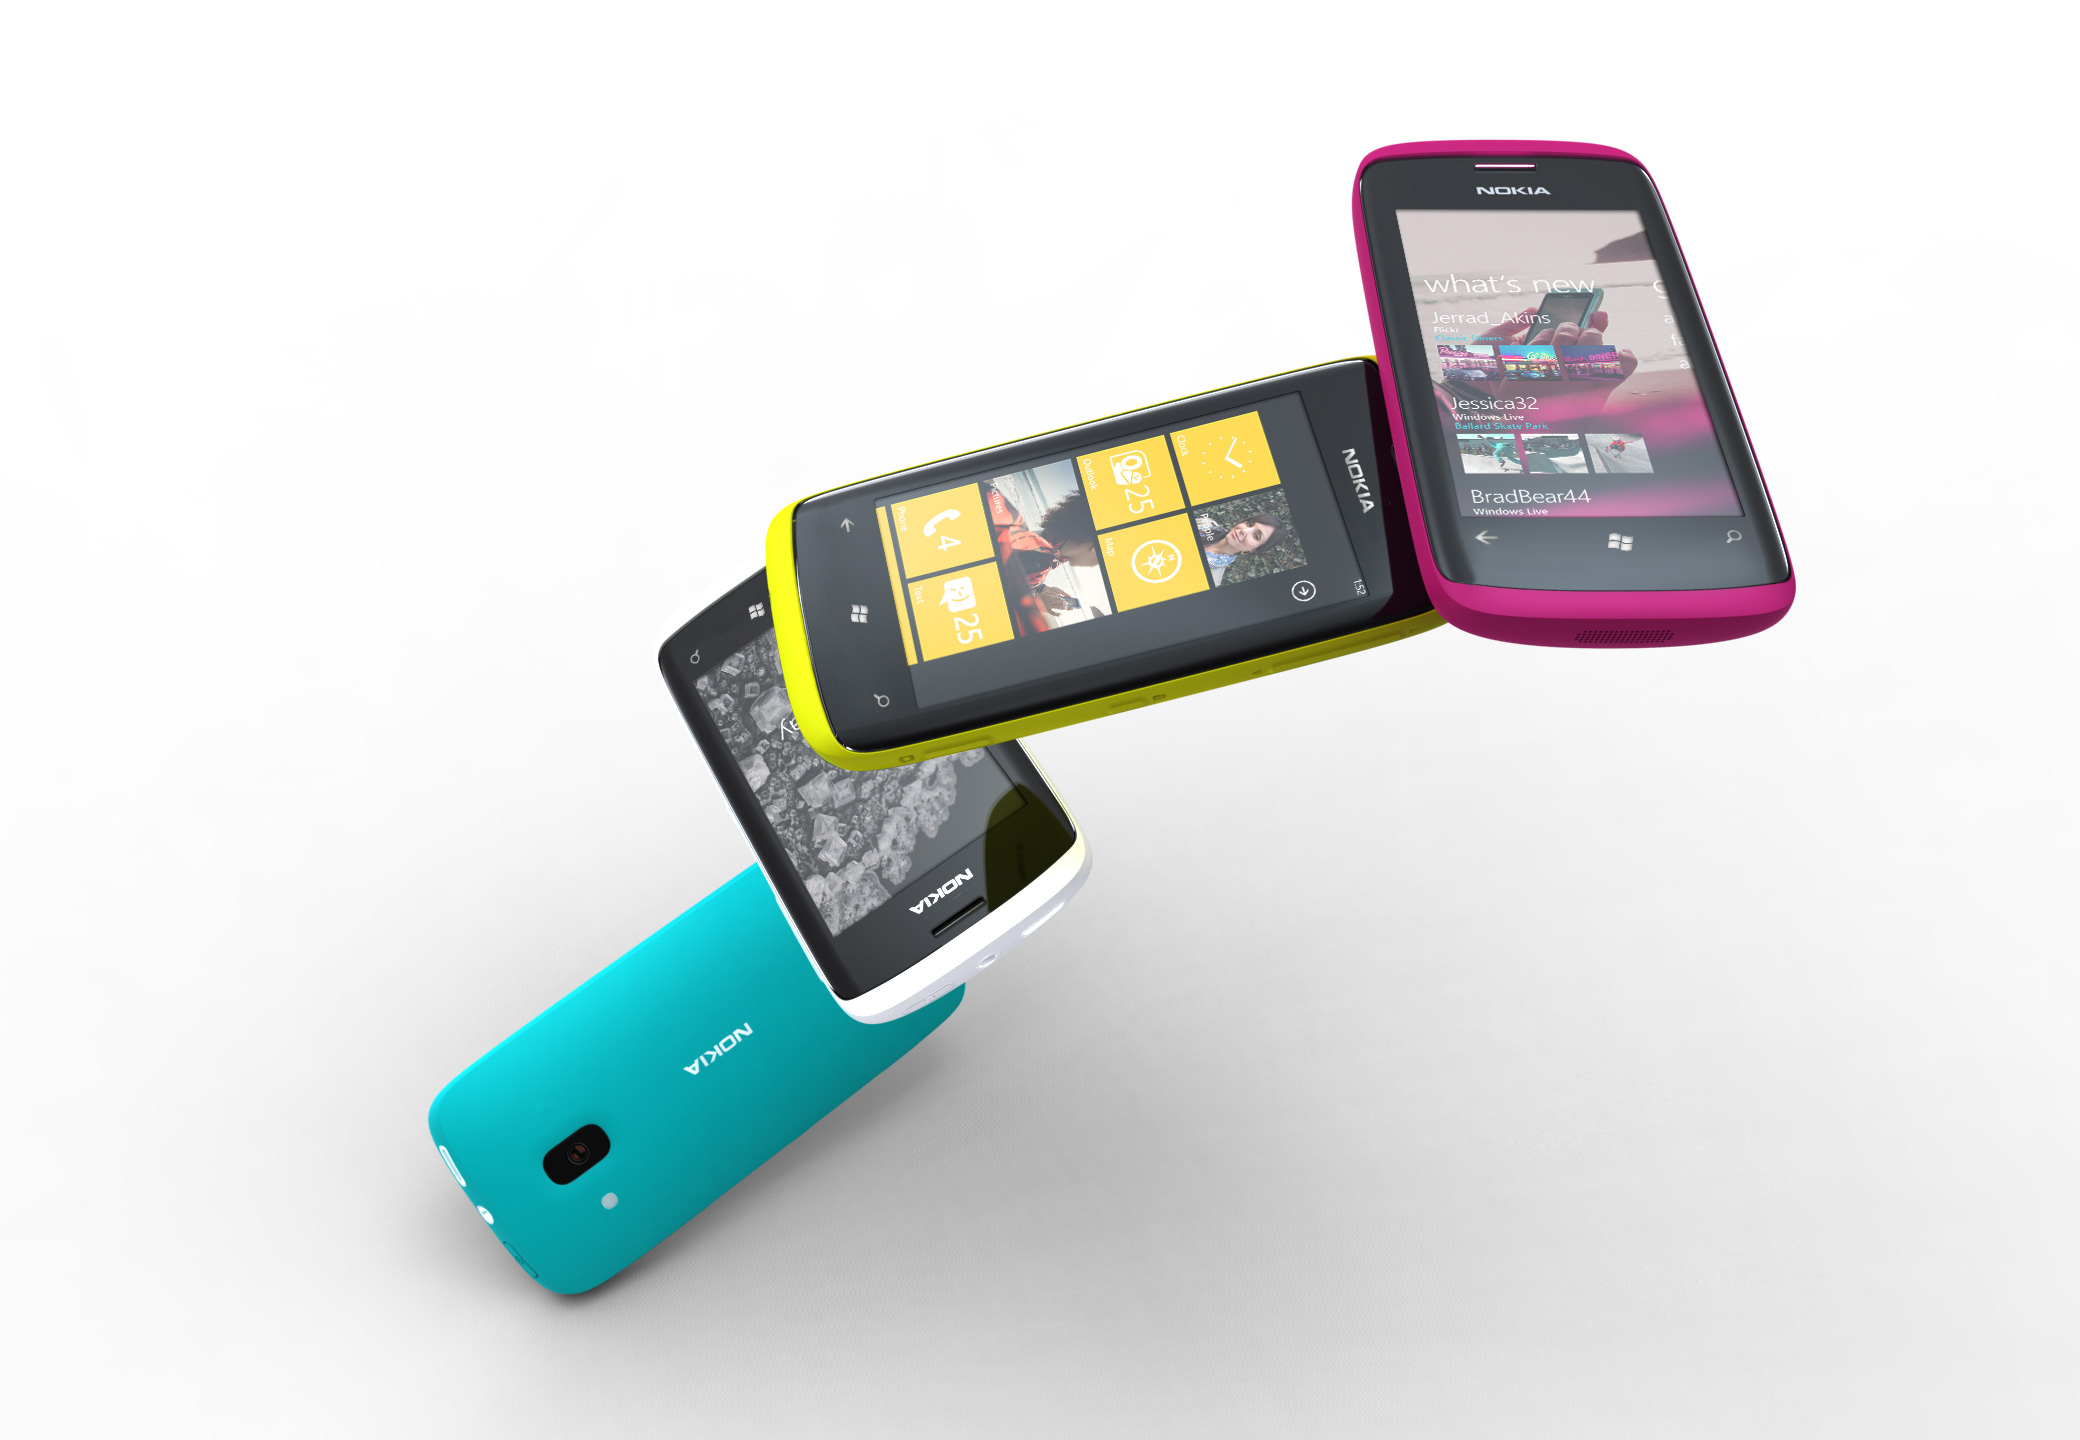 Nokia Officially Unveils More Windows Phone 7 Handset Renders [Updated]